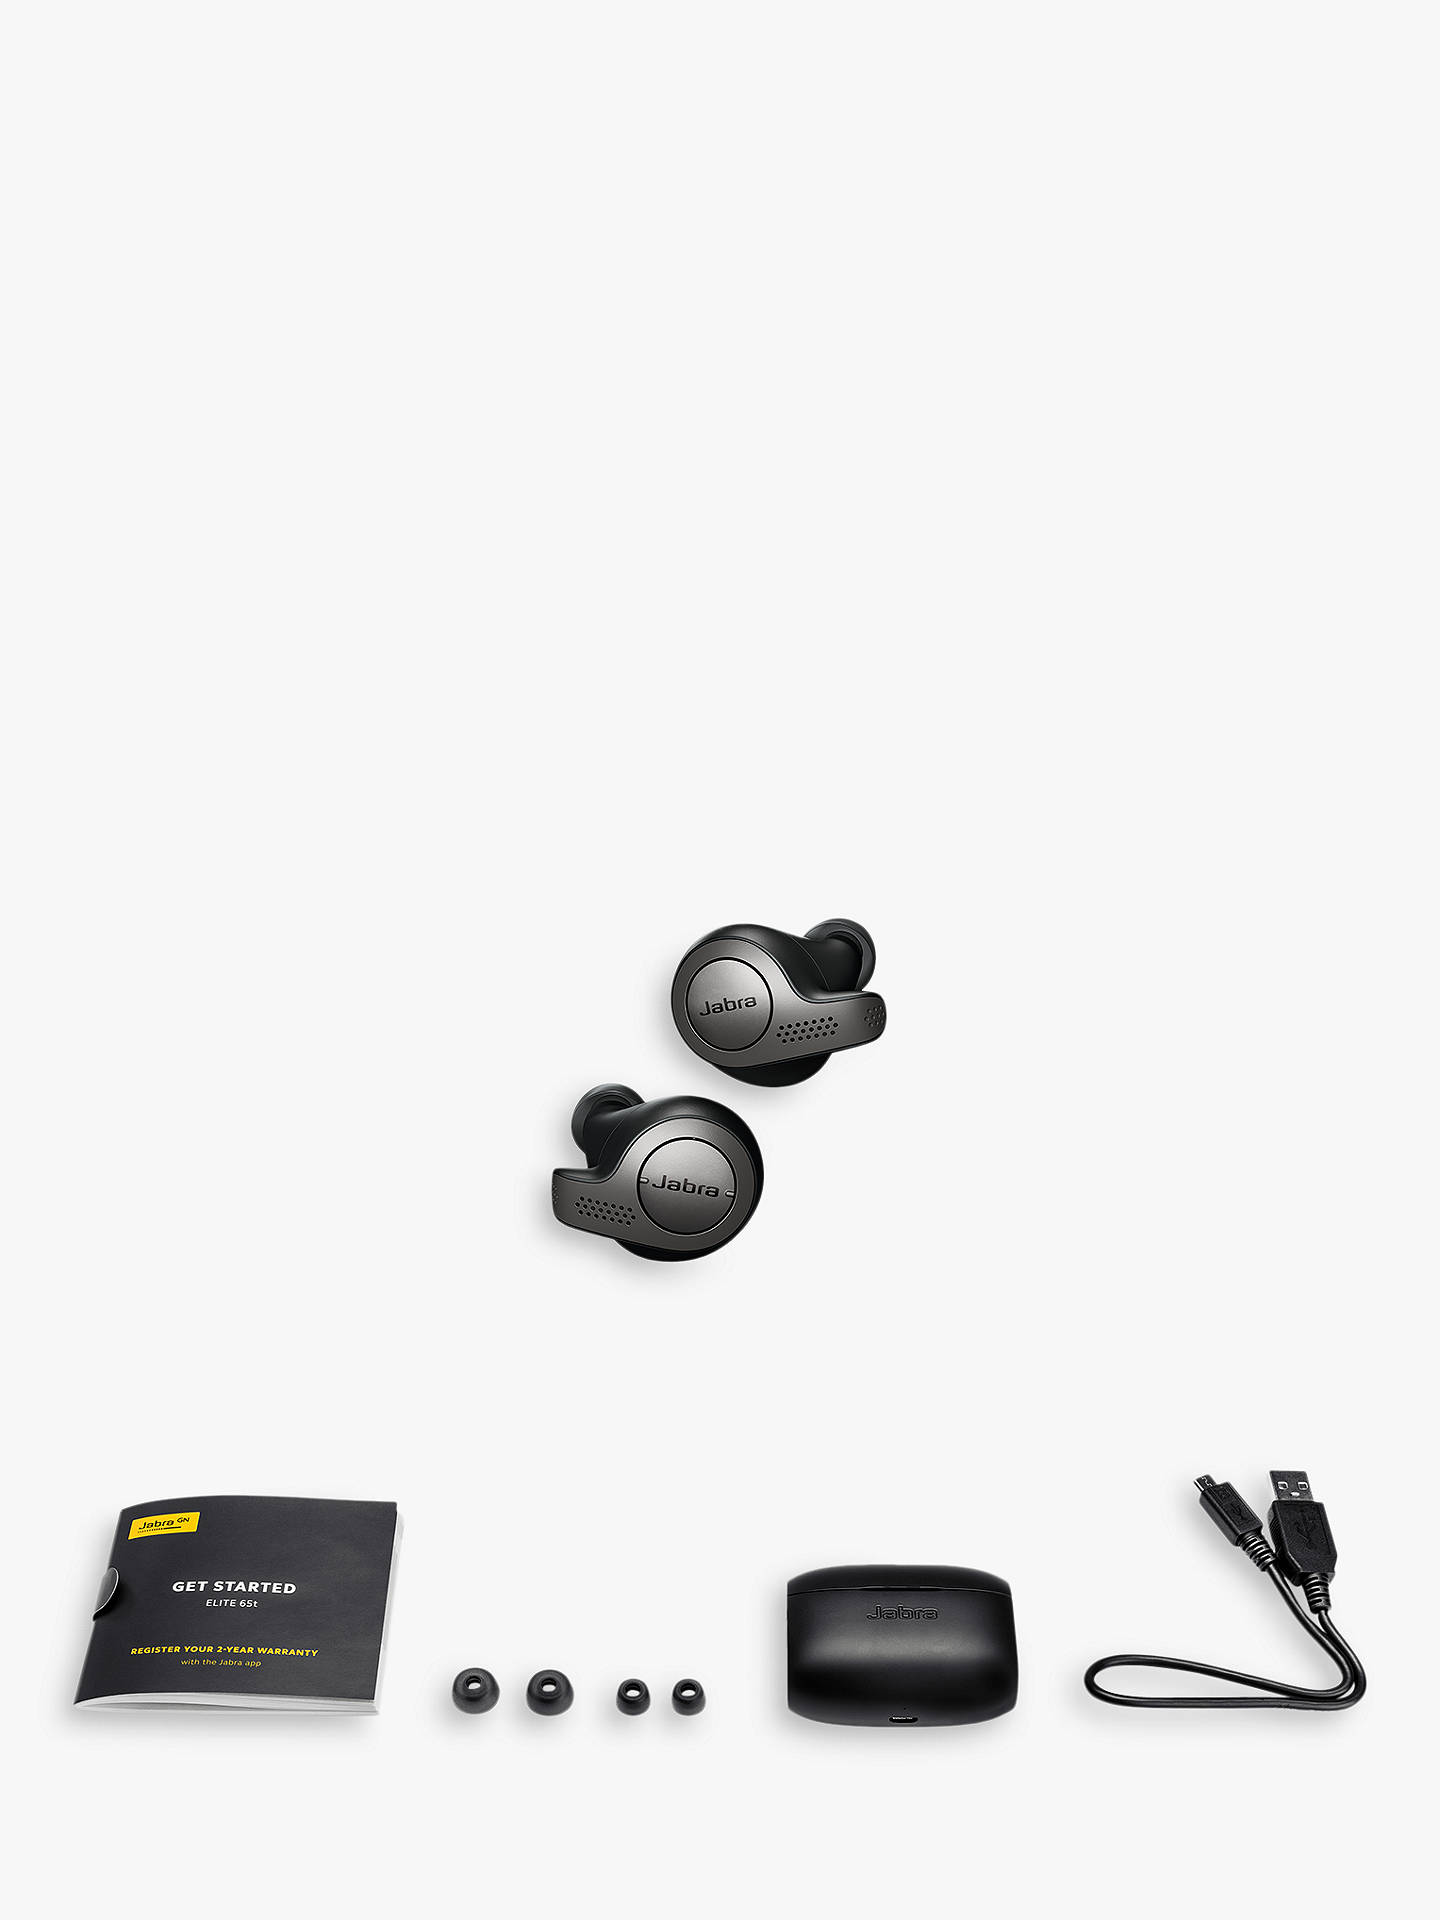 Jabra Elite 65t True Wireless Bluetooth In Ear Headphones With Mic Remote At John Lewis Partners